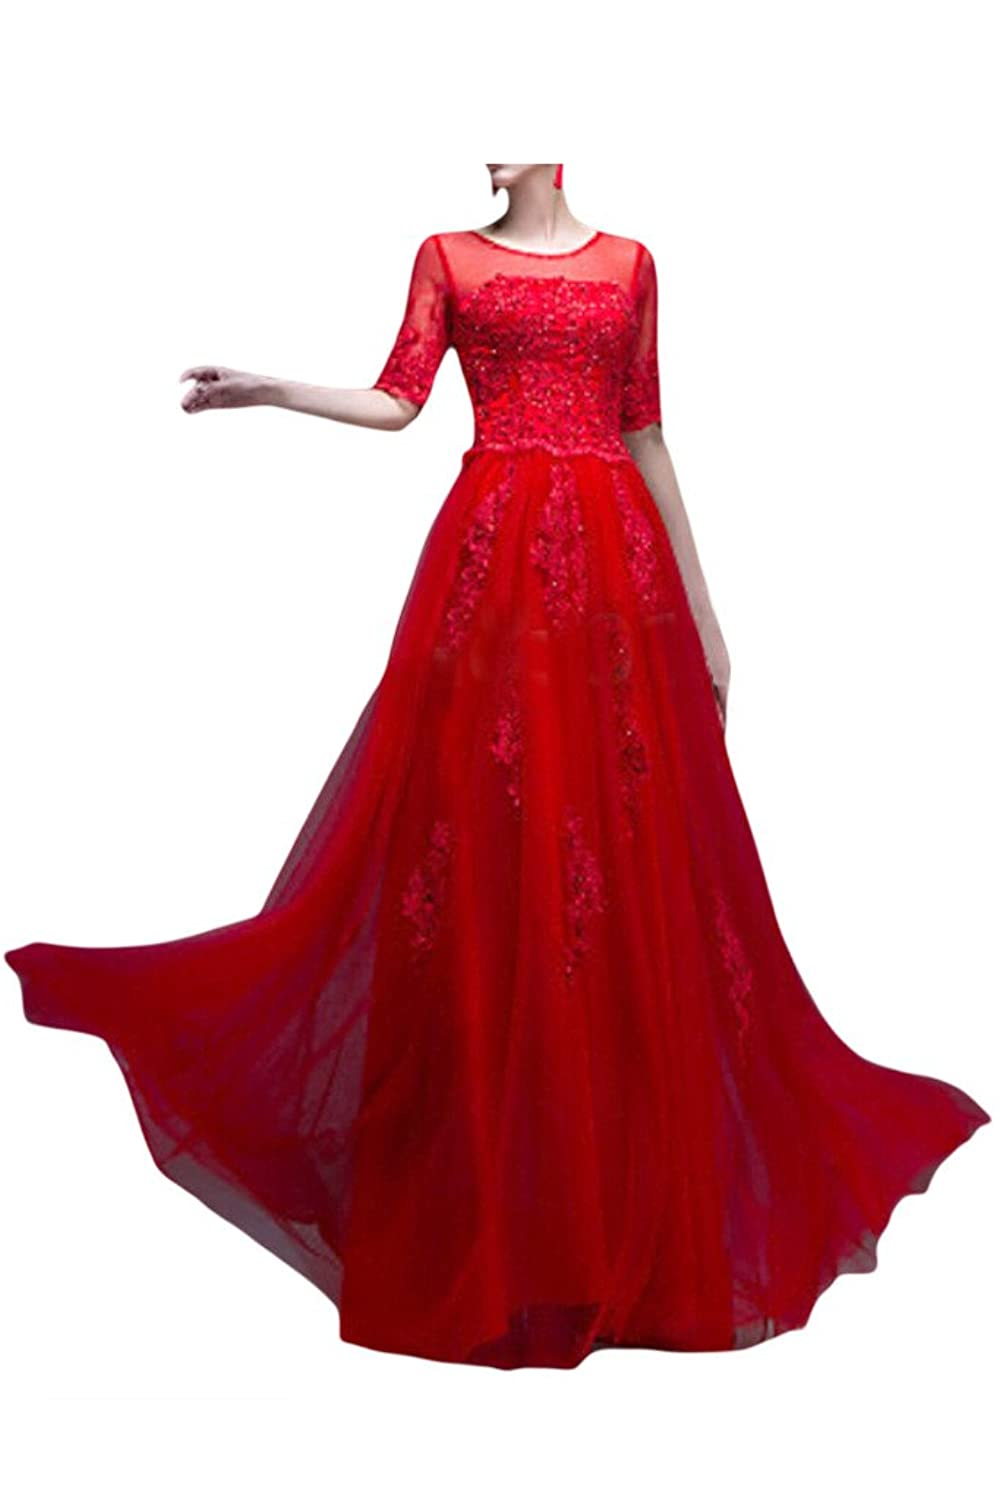 Sunvary A-Line Half Sleeves Jewel Neckline Foraml Occasion Dress Party Gowns